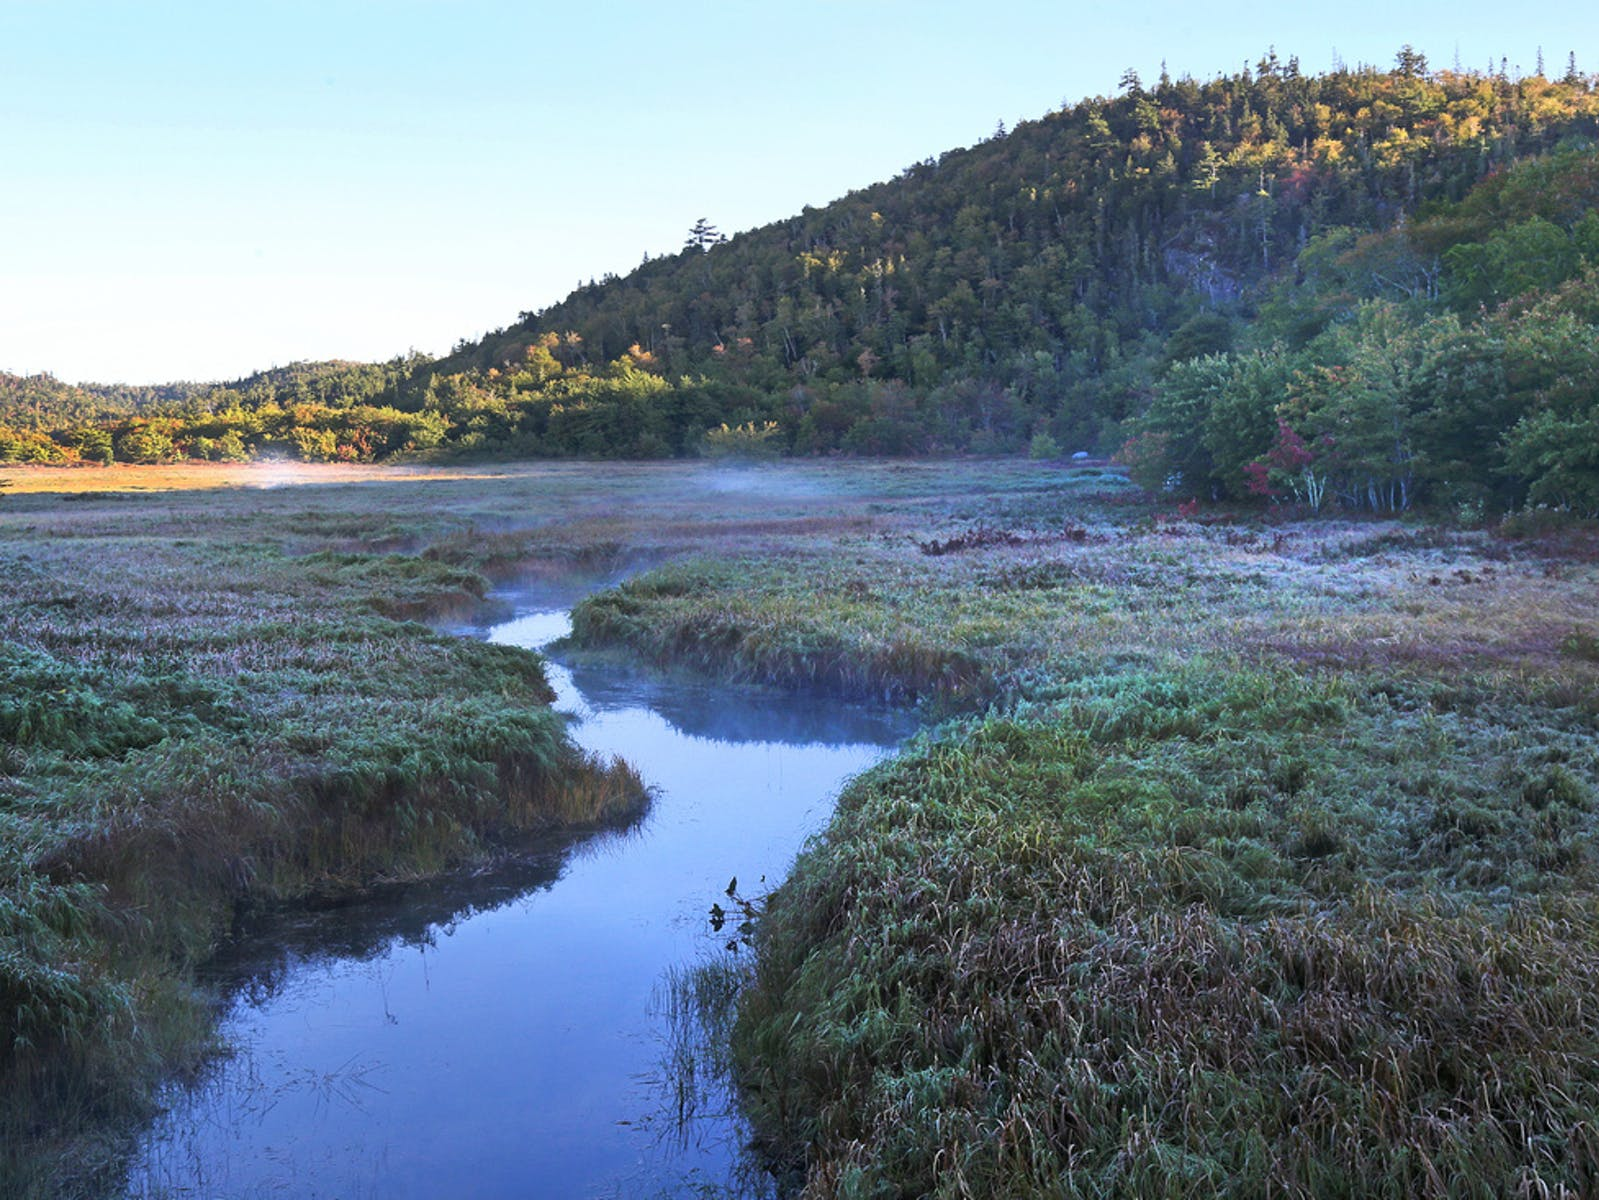 NCC Floodplain near the Musquodoboit River, NS